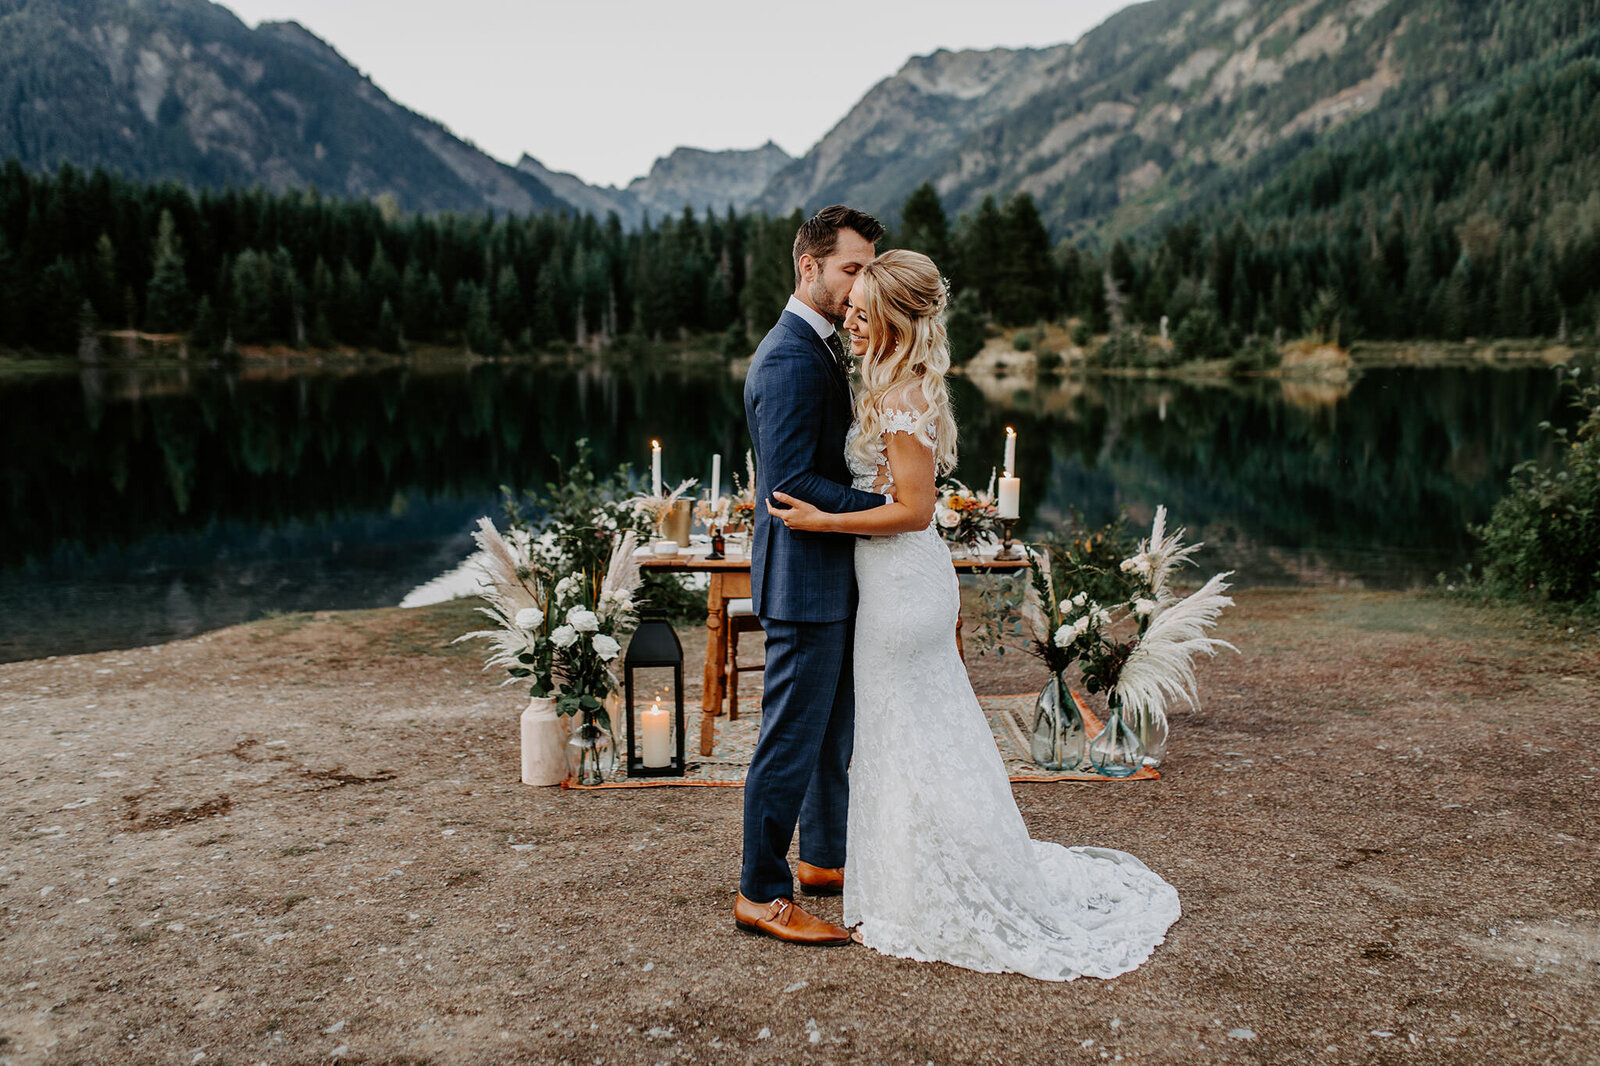 Gold Creek Pond Elopement 11